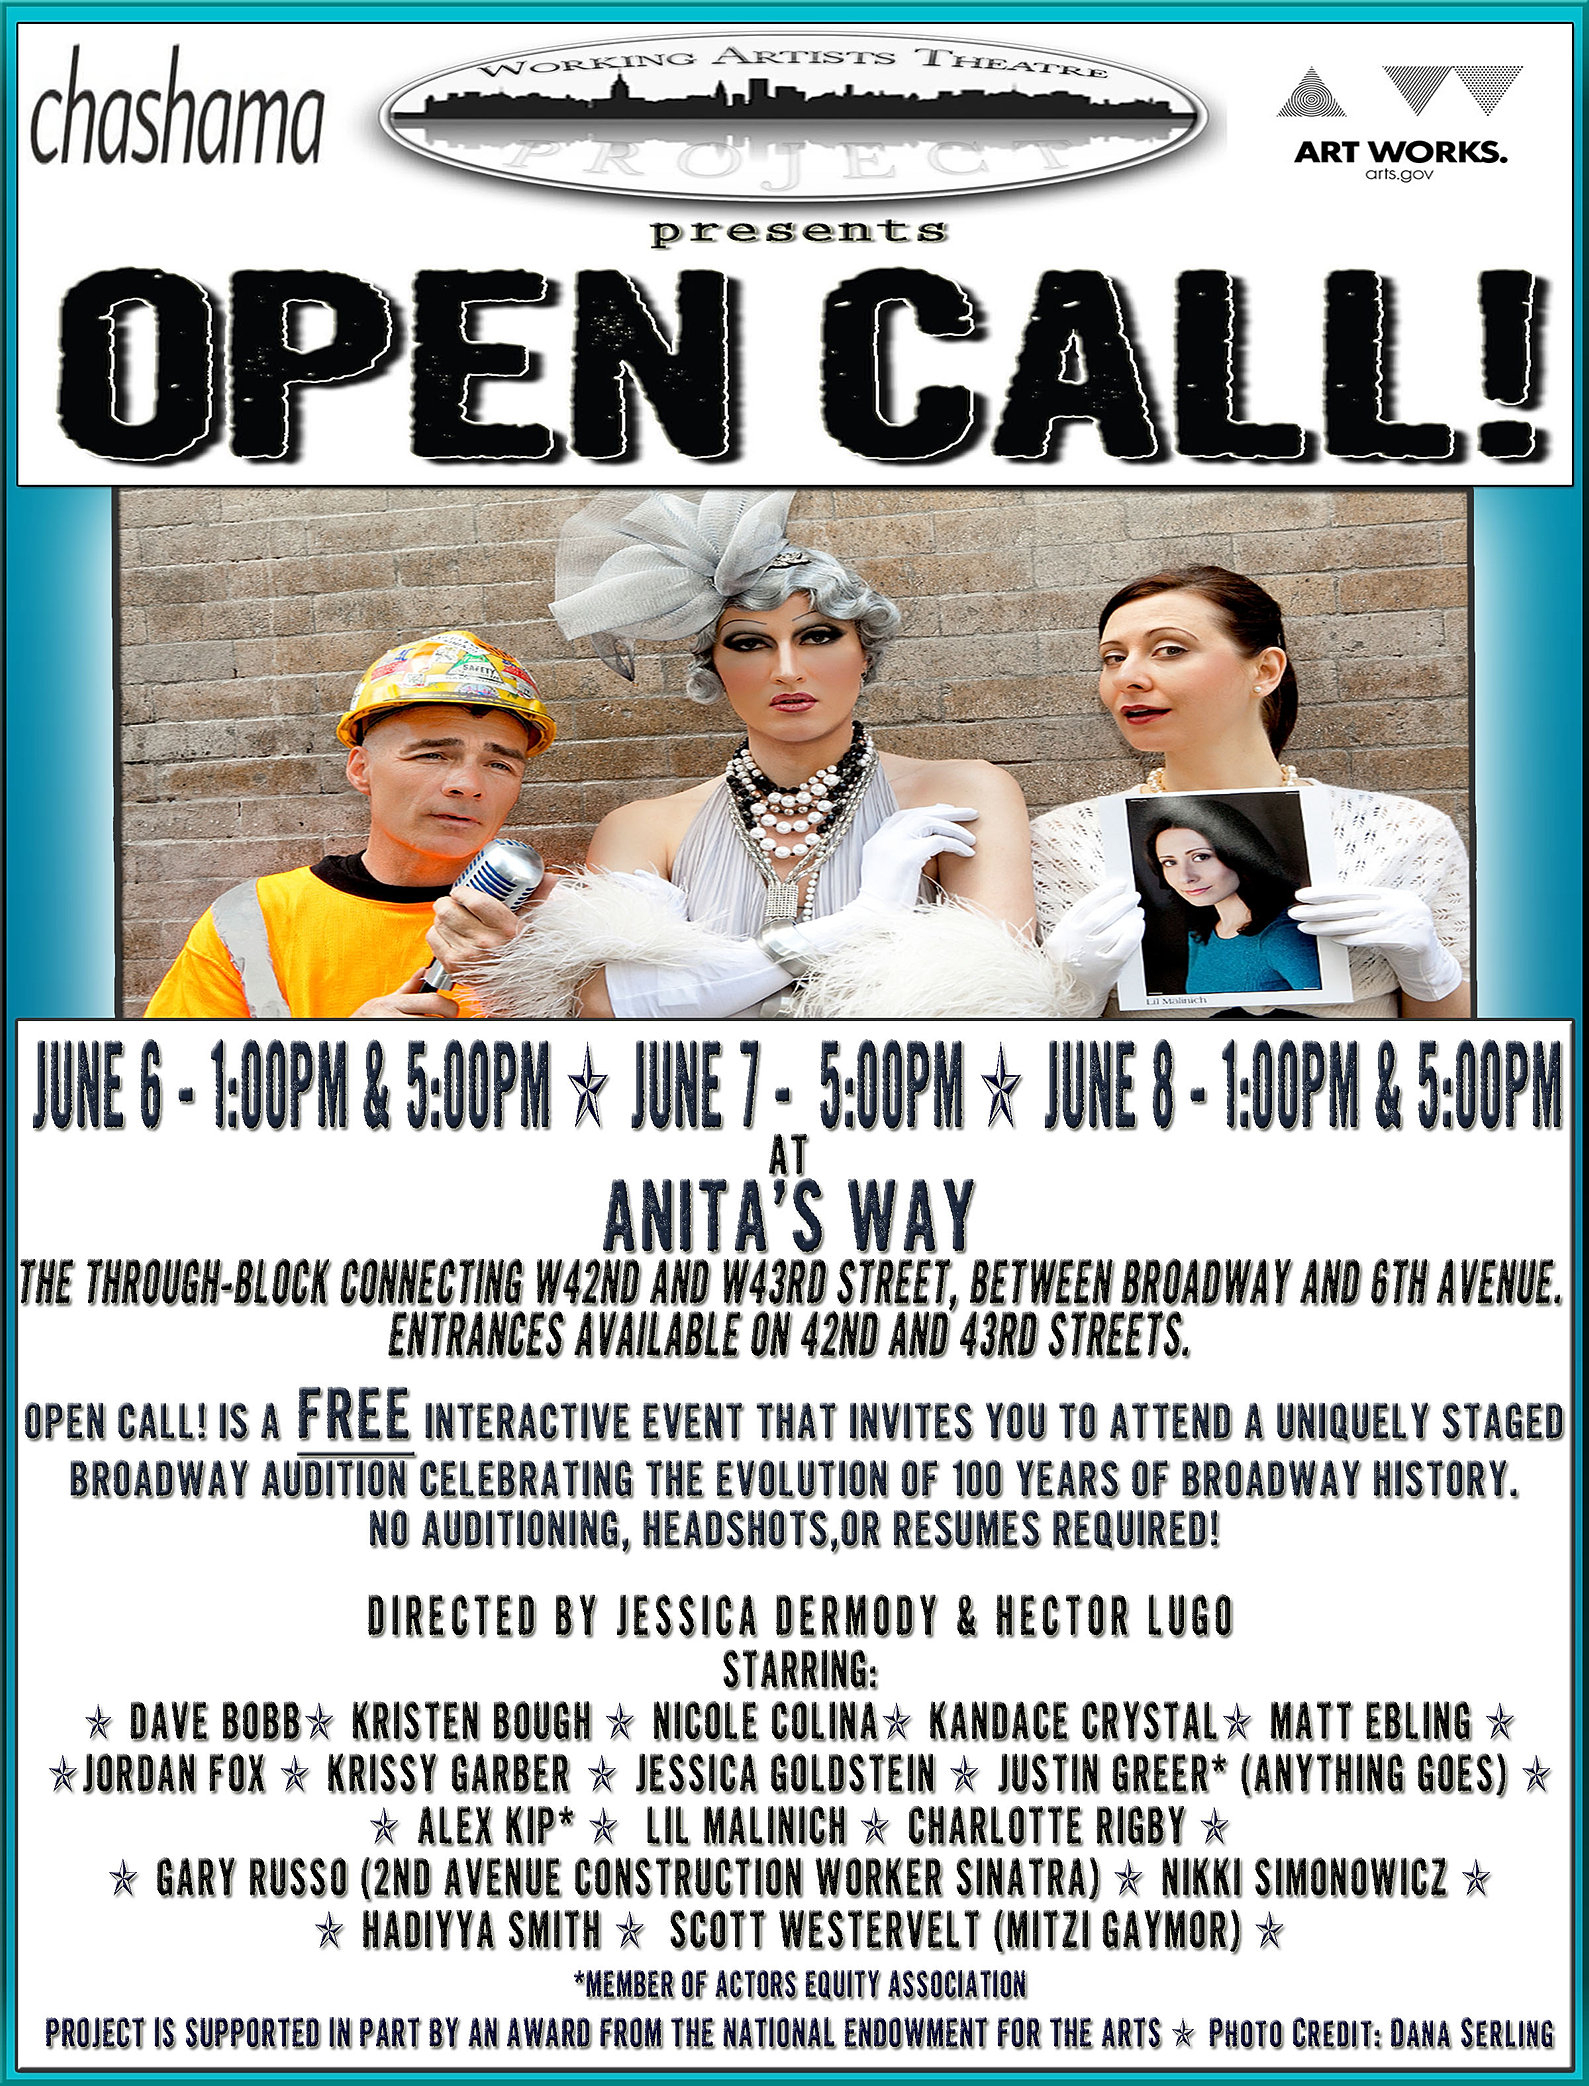 jessica dermody director producer wardrobe new york about open call flyer 2012 jpg